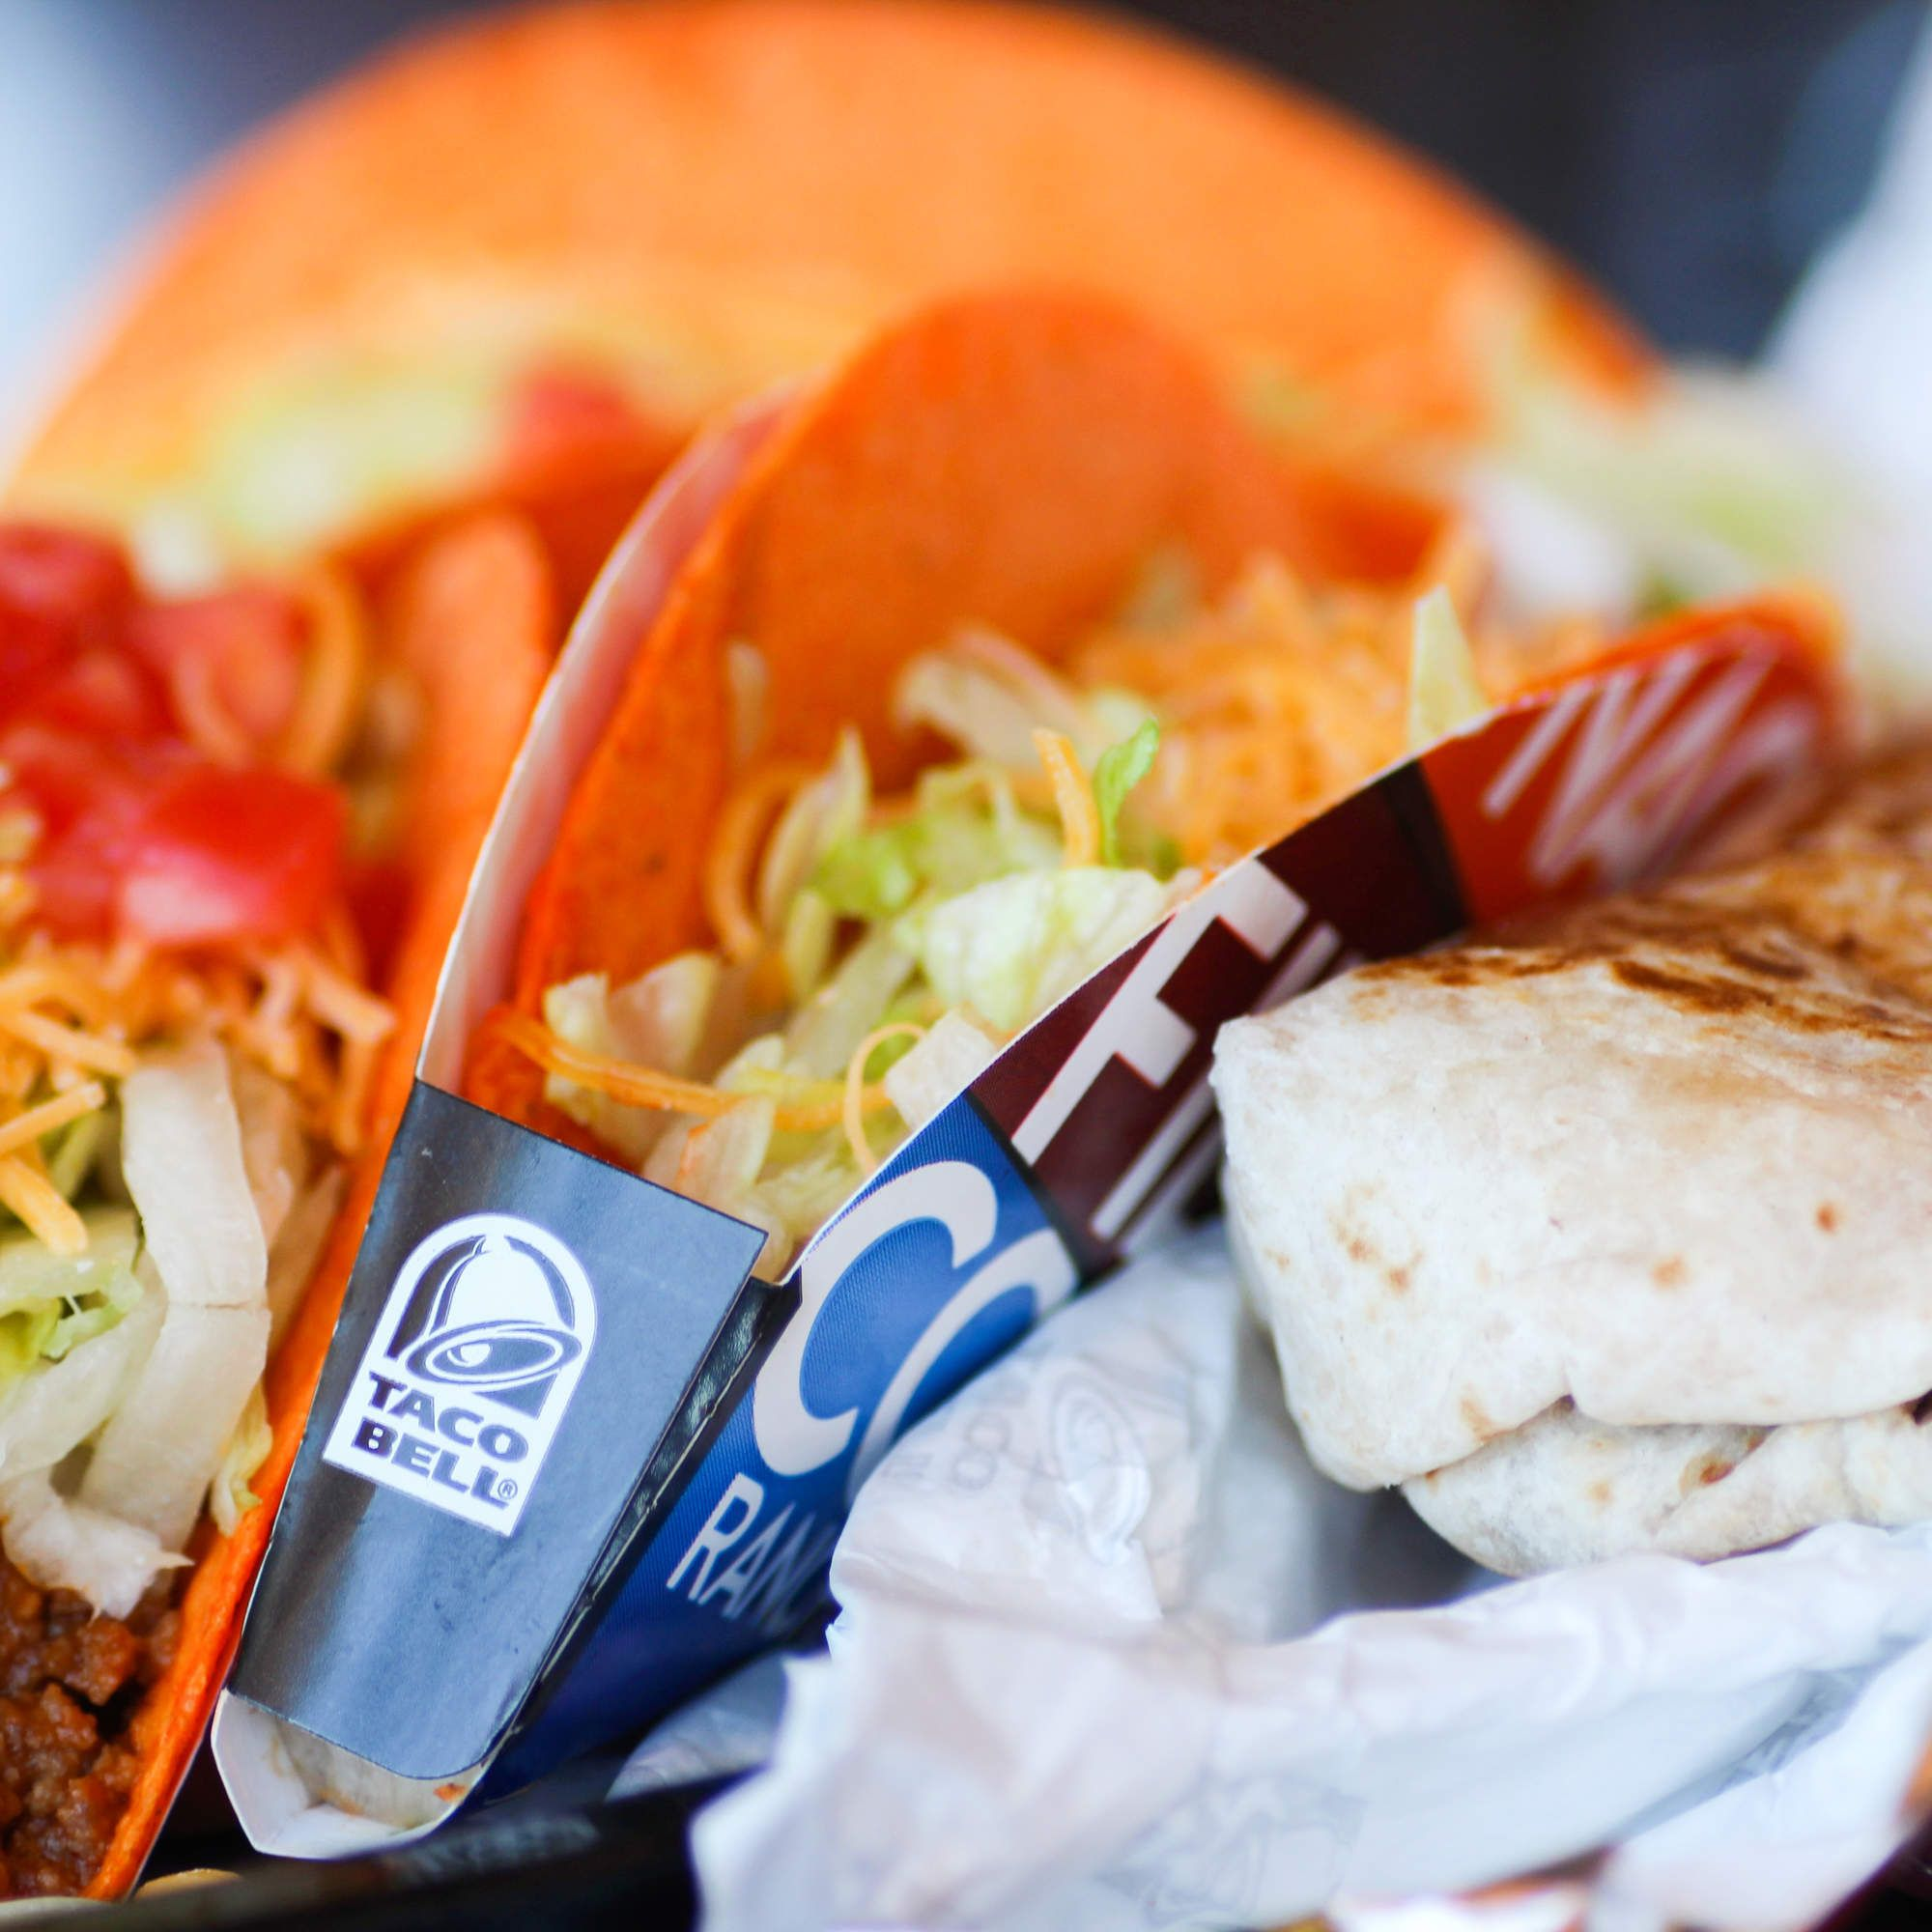 The best vegetarian meal at 24 fastfood chains